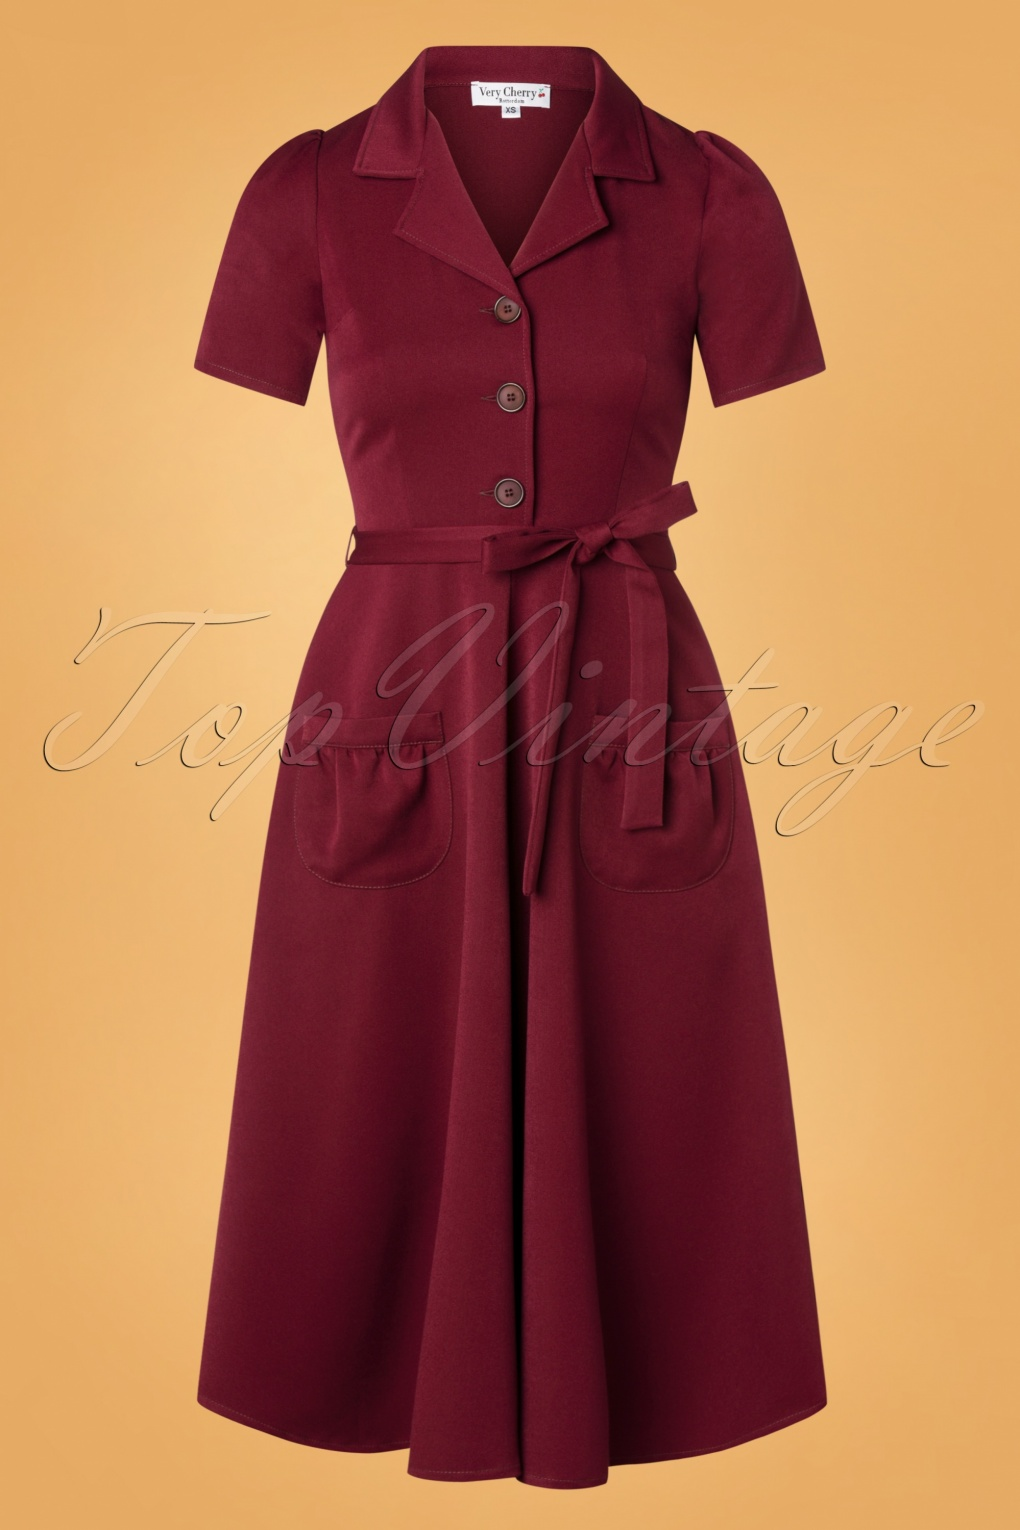 1940s Dresses and Clothing UK | 40s Shoes UK 40s Revers Gabardine Dress in Burgundy £120.08 AT vintagedancer.com